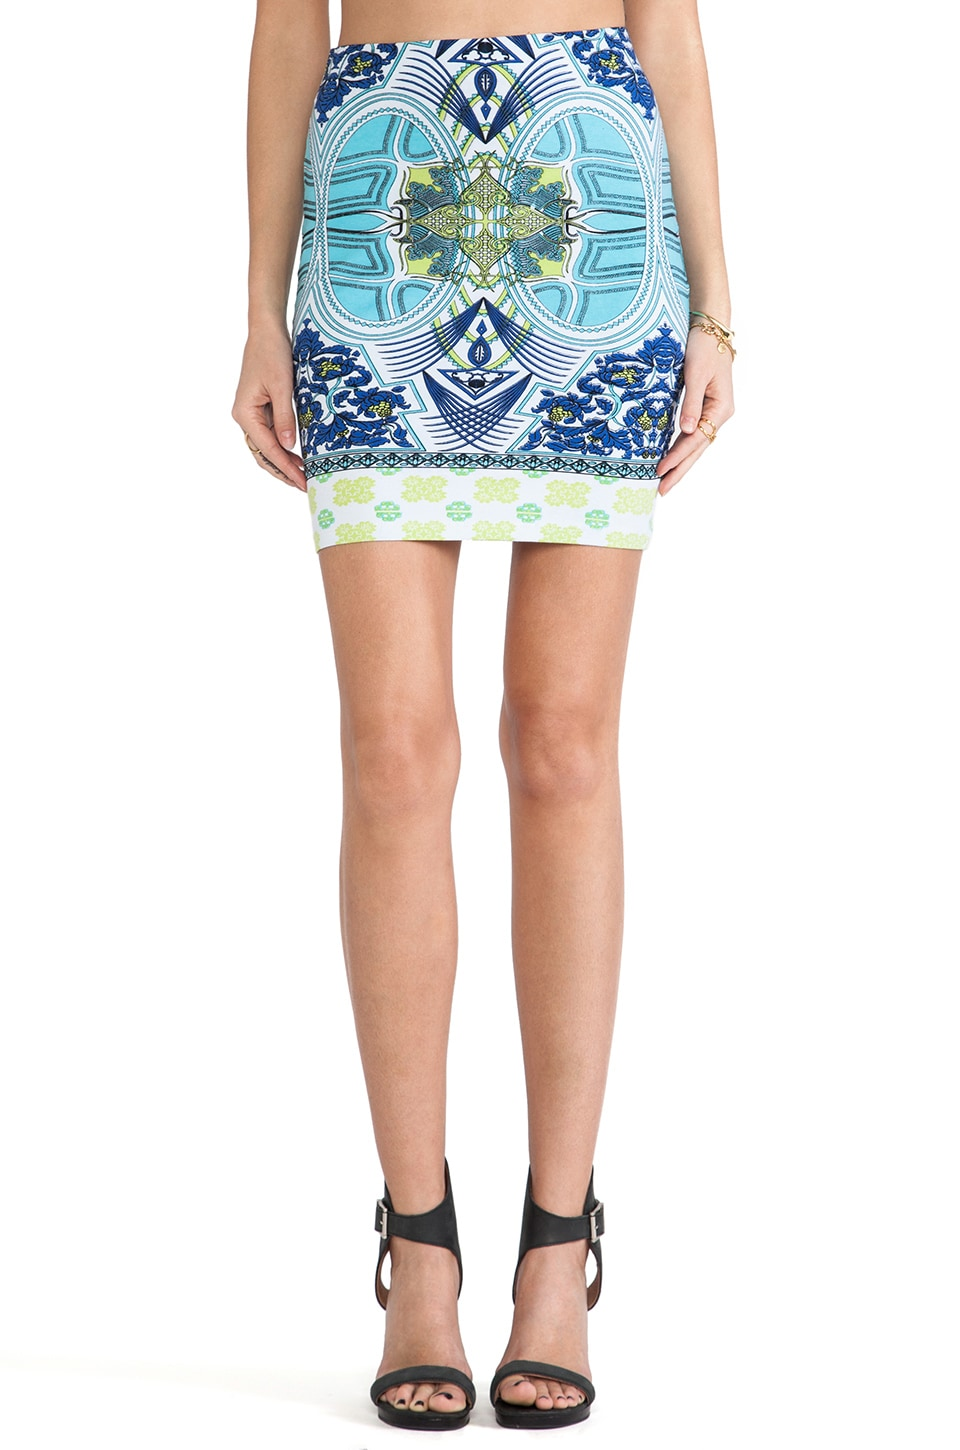 FAIRGROUND Spectrum Skirt in Neo Geo